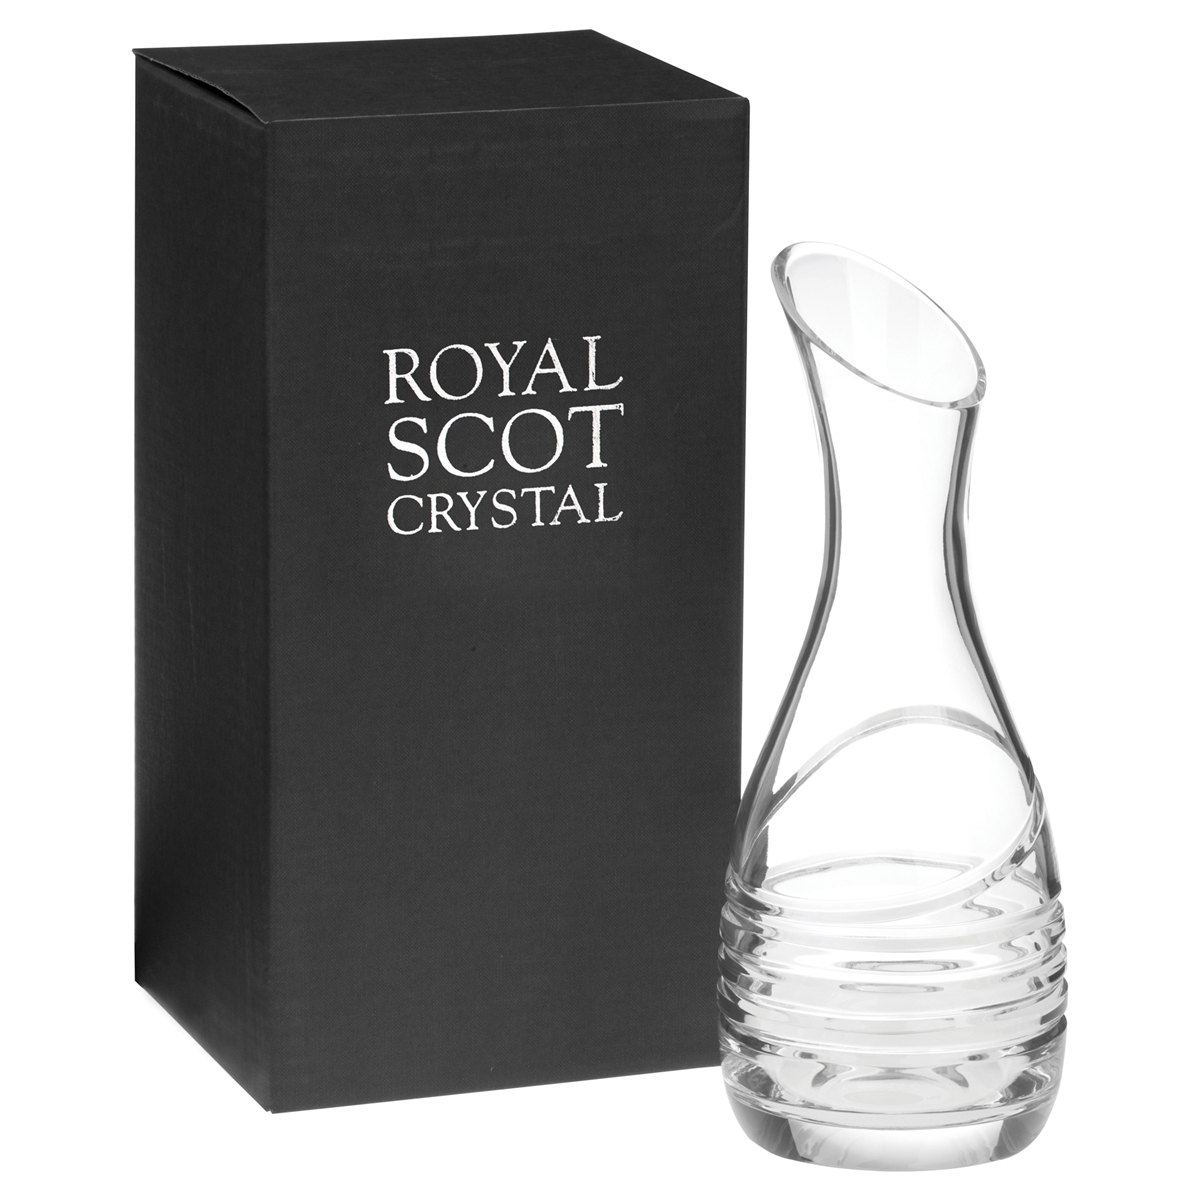 crystal saturn design carafe by royal scot crystal. Black Bedroom Furniture Sets. Home Design Ideas